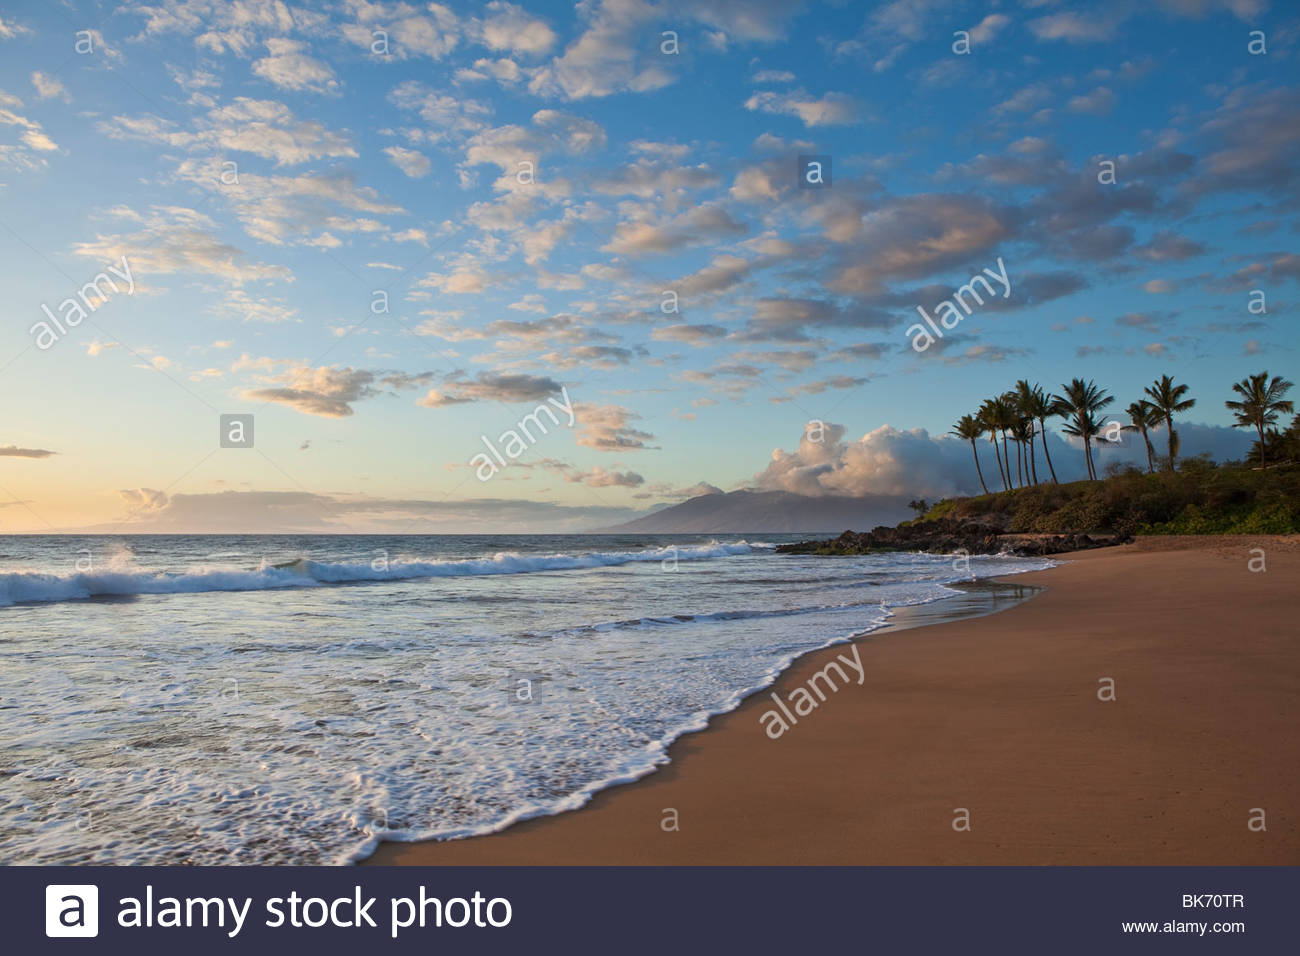 Po'olenalena Beach at sunset on the island of Maui in the State of Hawaii USA - Stock Image